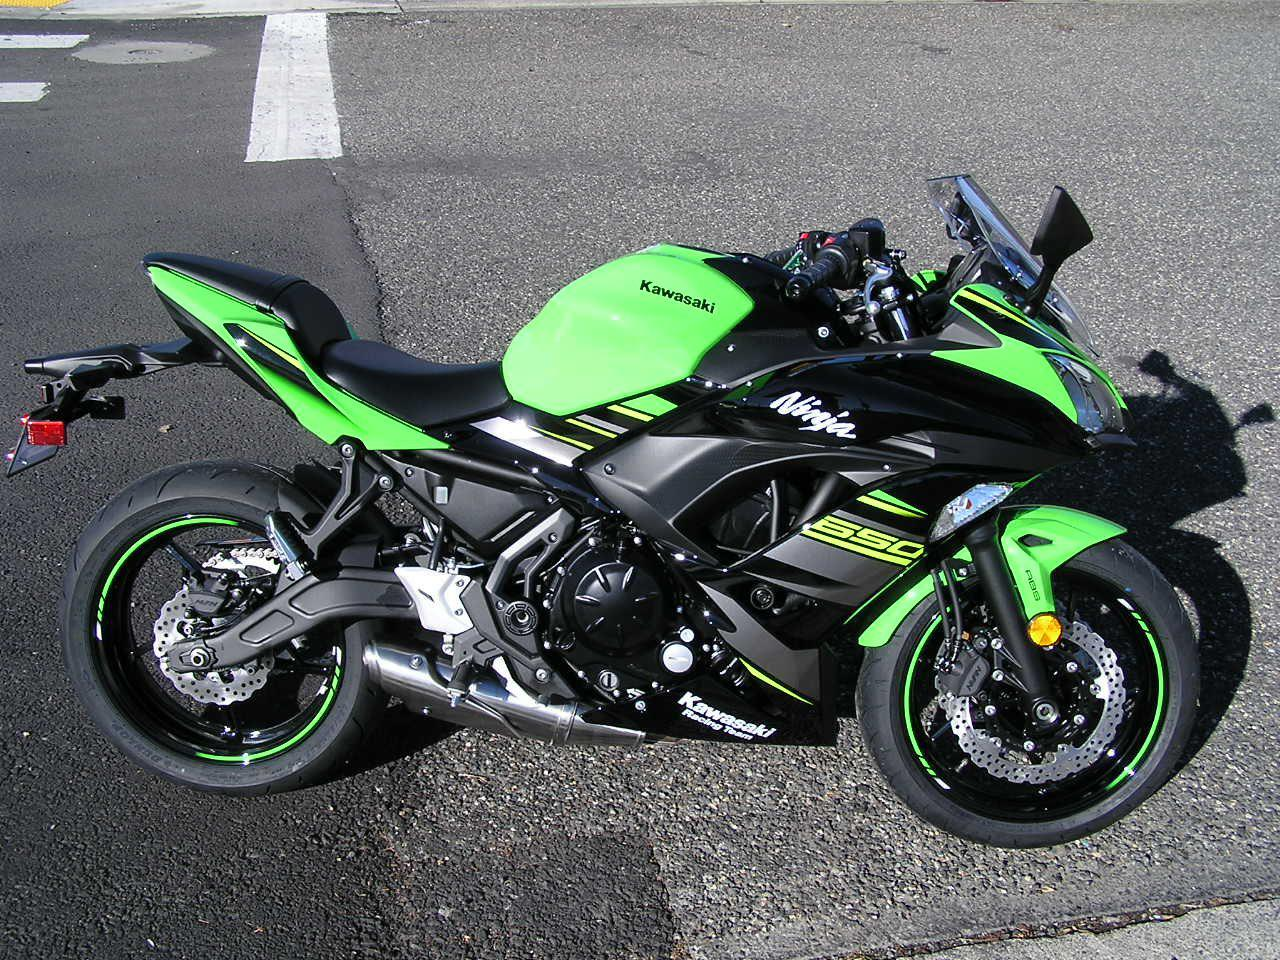 2018 Kawasaki NINJA 650 ABS KRT EDITION For Sale In Clarkston WA